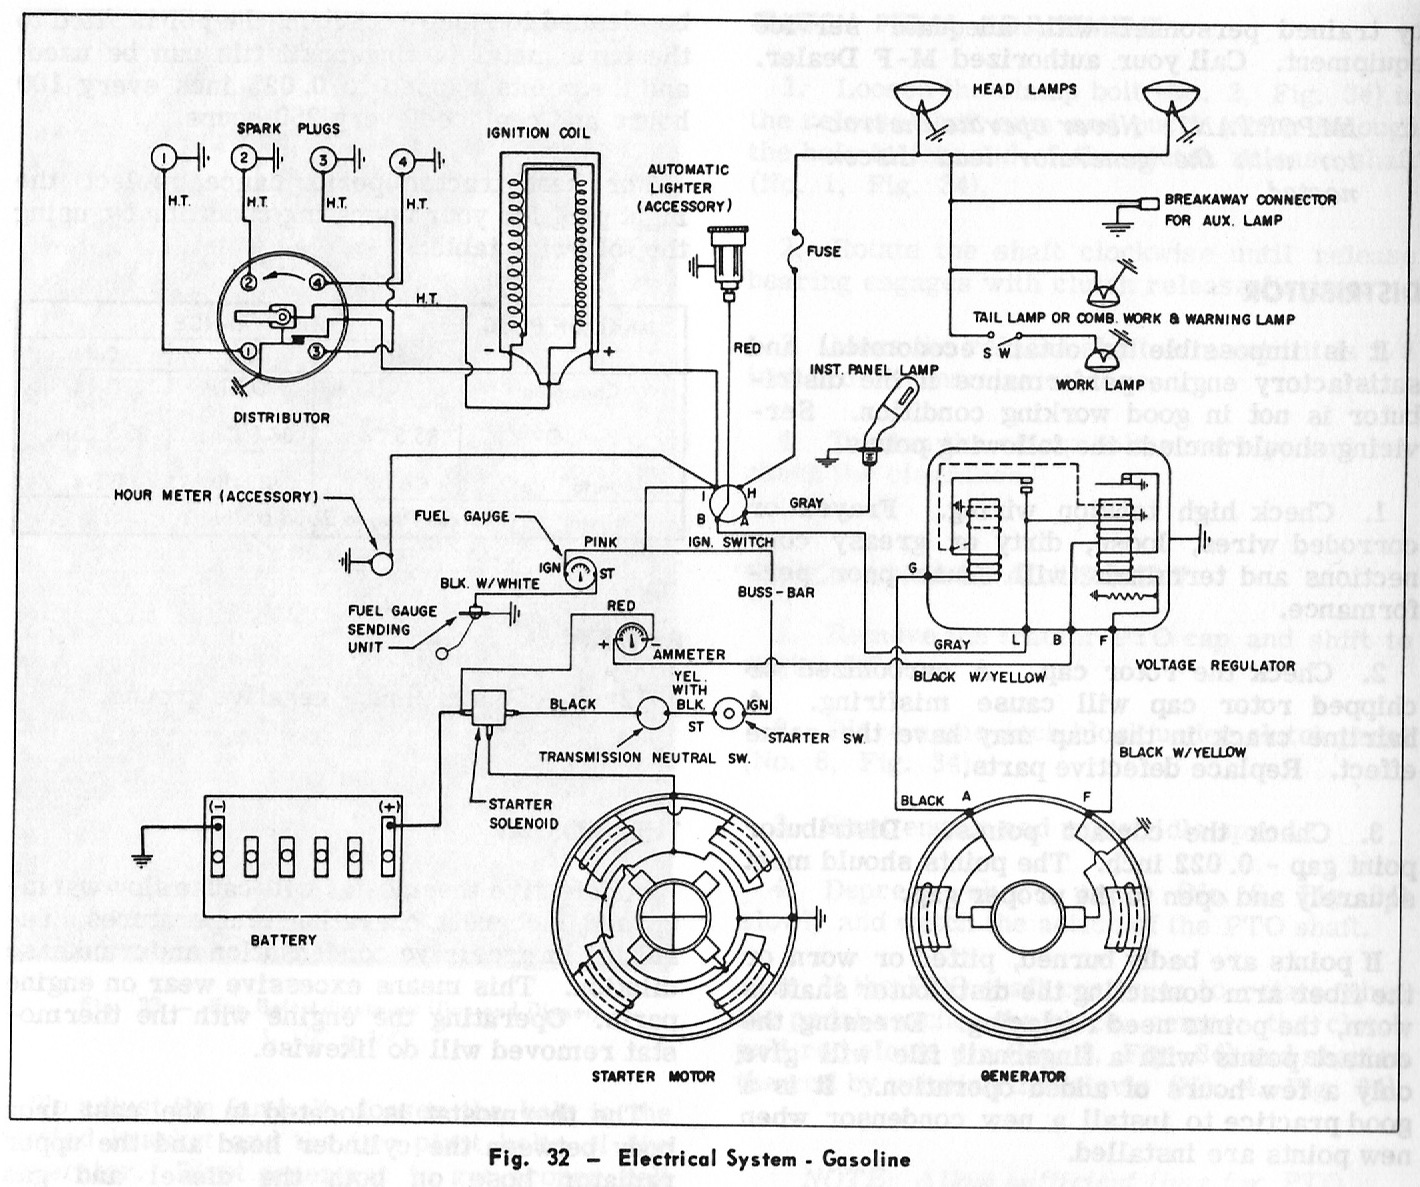 Mf 65 Tractor Ignition Switch Wiring Diagram Will Kubota An Idiots Guide To The Massey Ferguson Gas Engine Electrical Rh Idiotsmf65 Blogspot Com Diesel